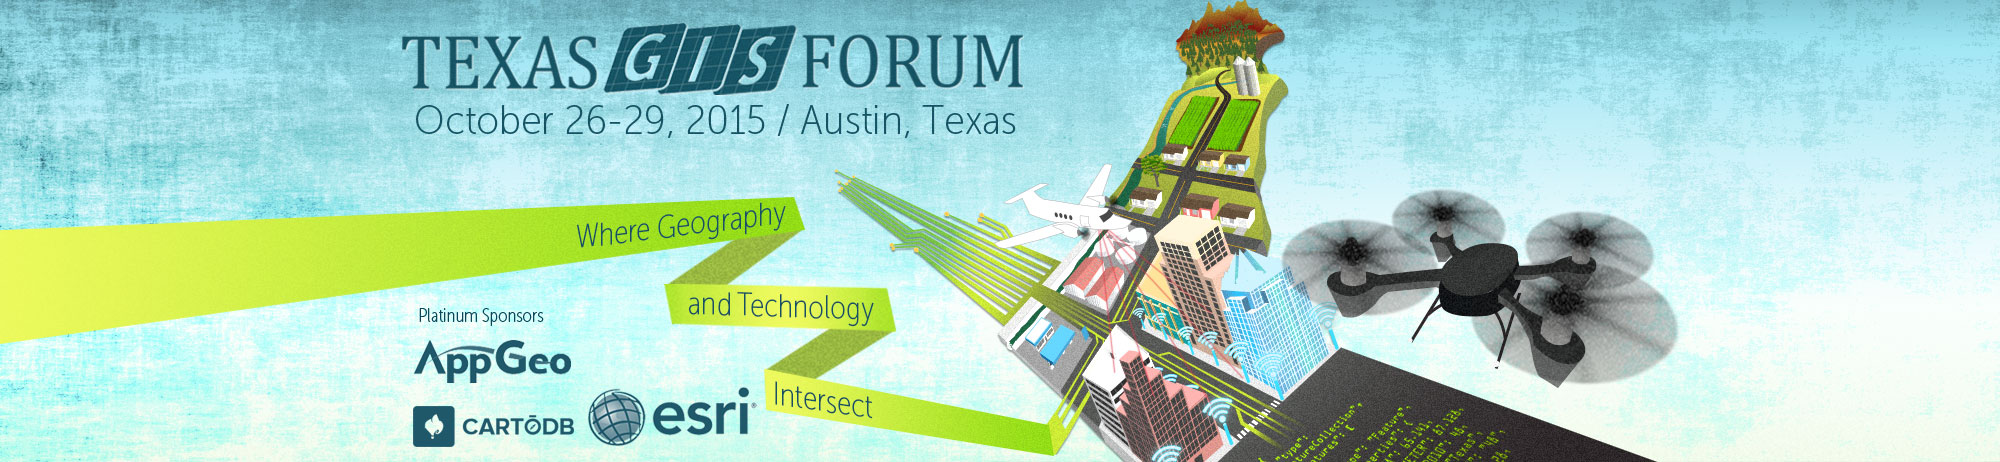 Texas GIS Forum Main Image